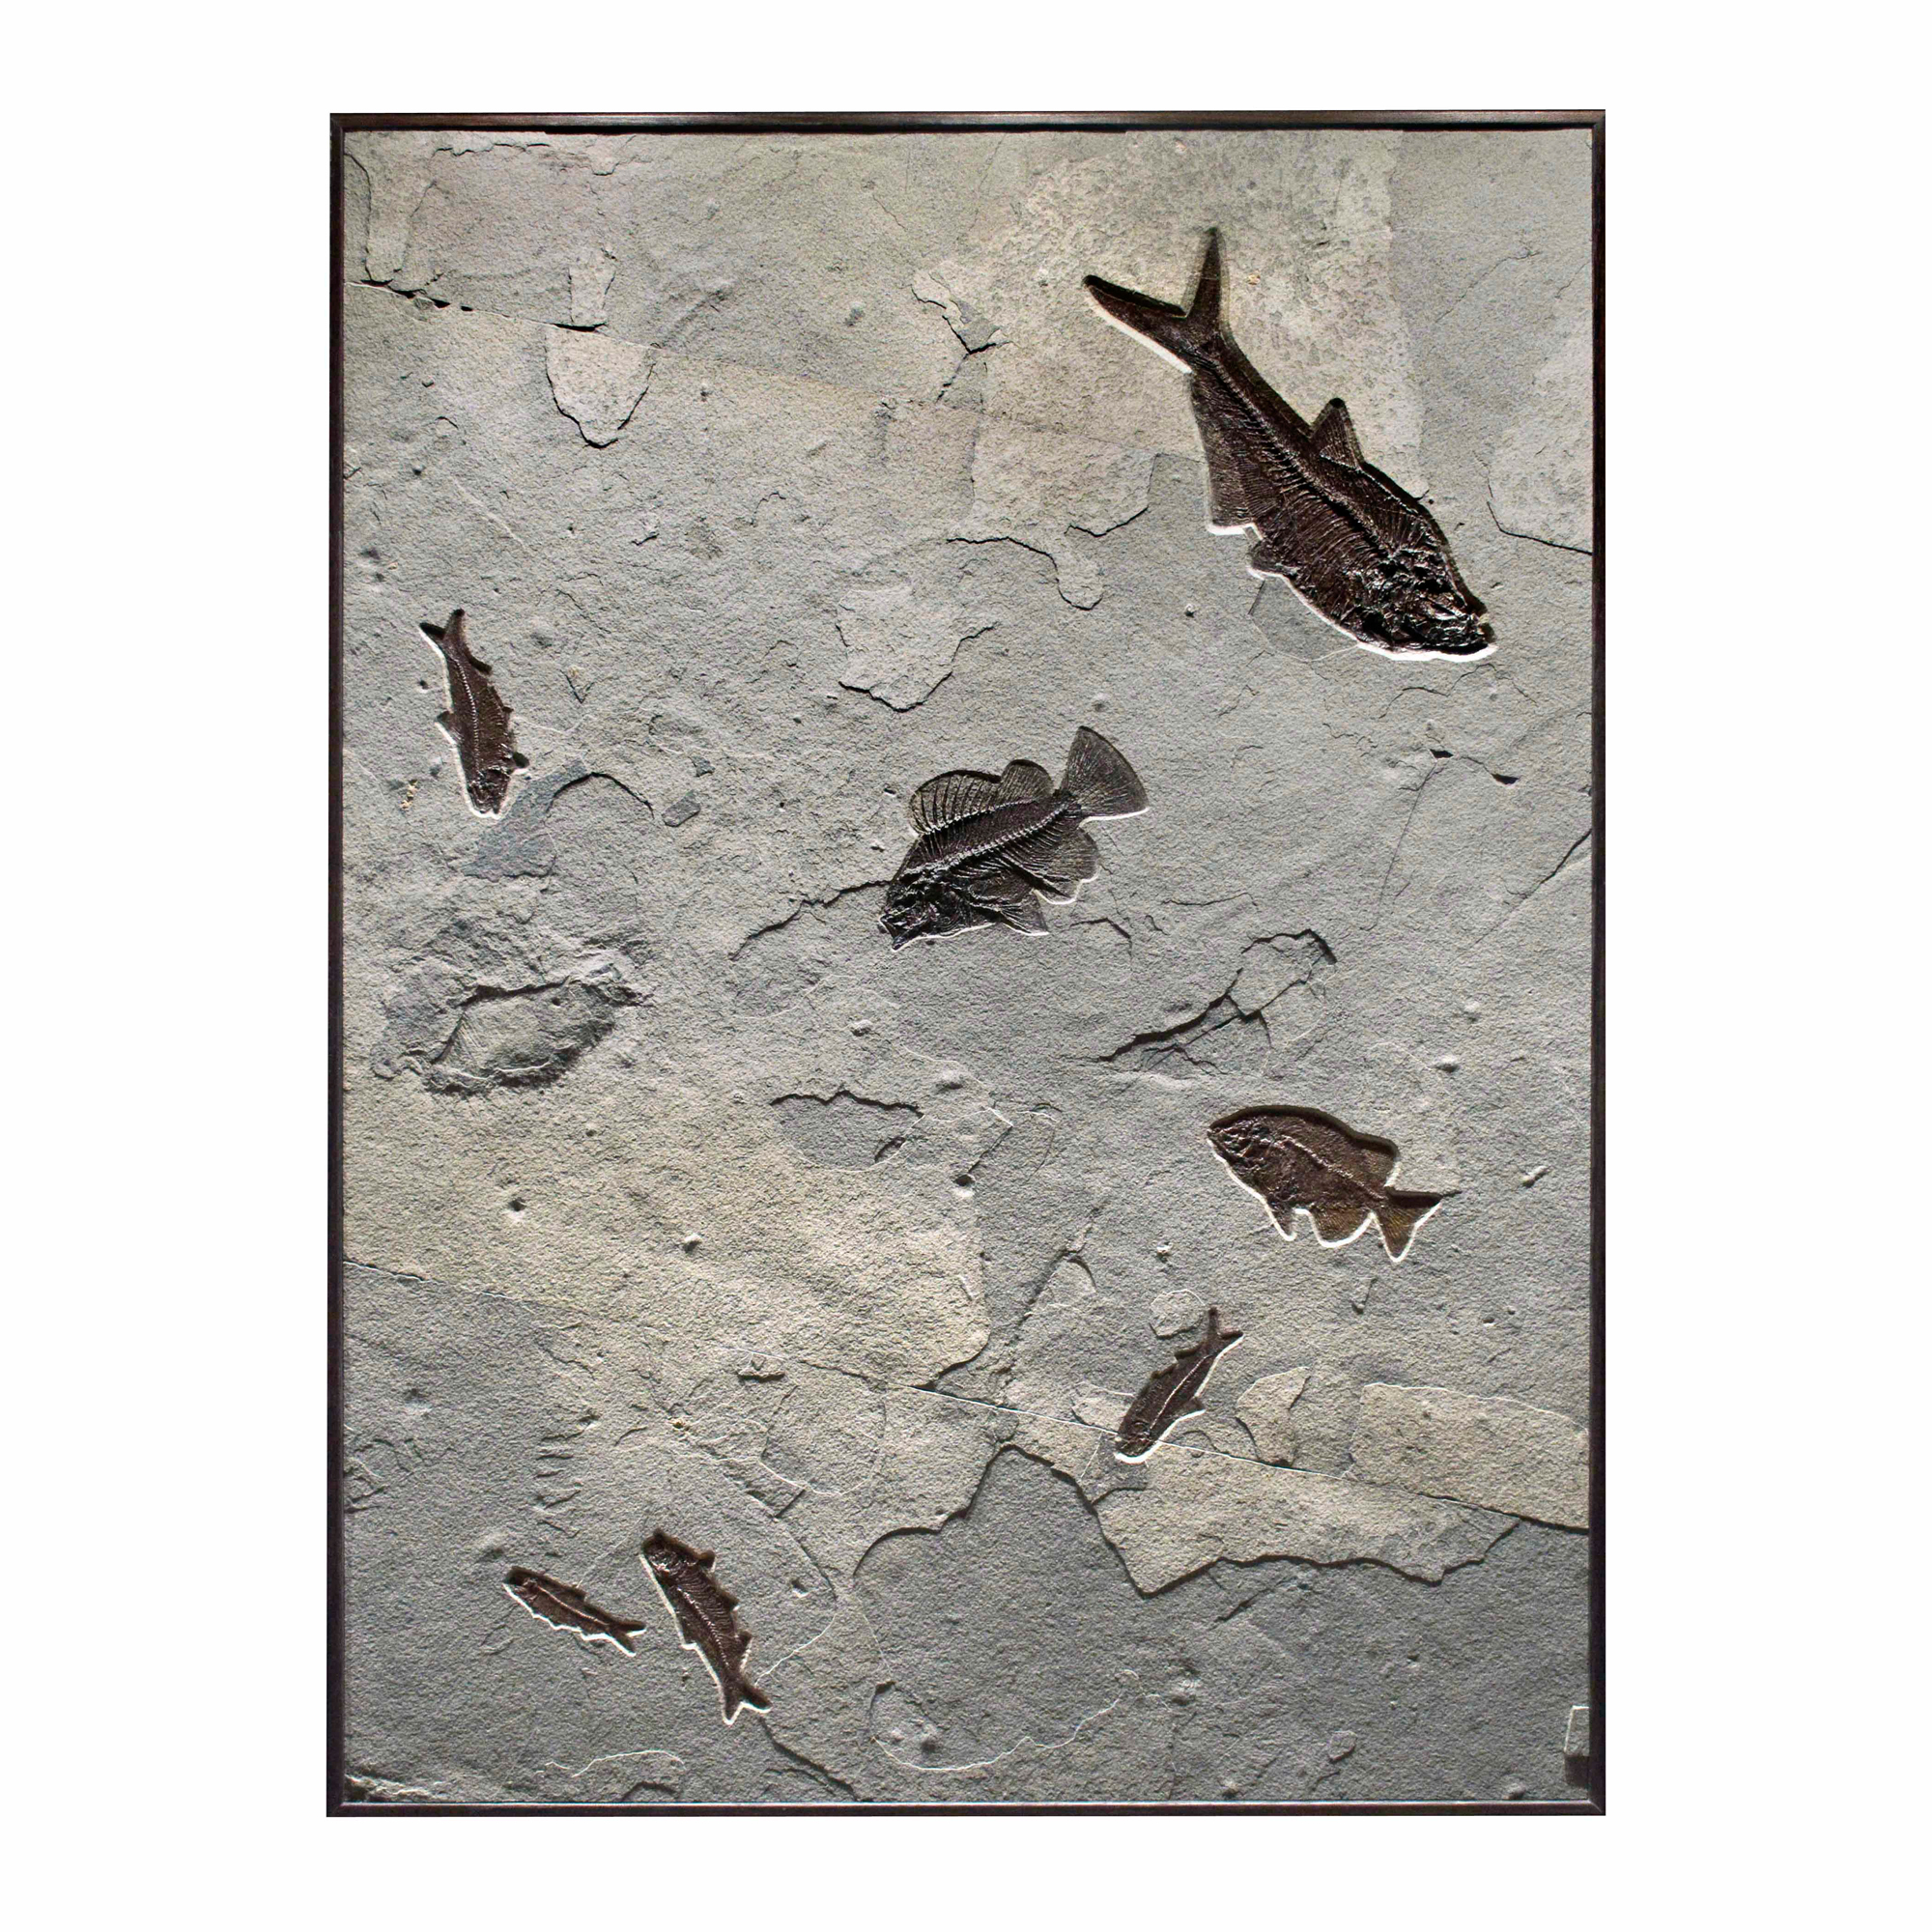 Fossil Collector Mural 02_Q100831010cm